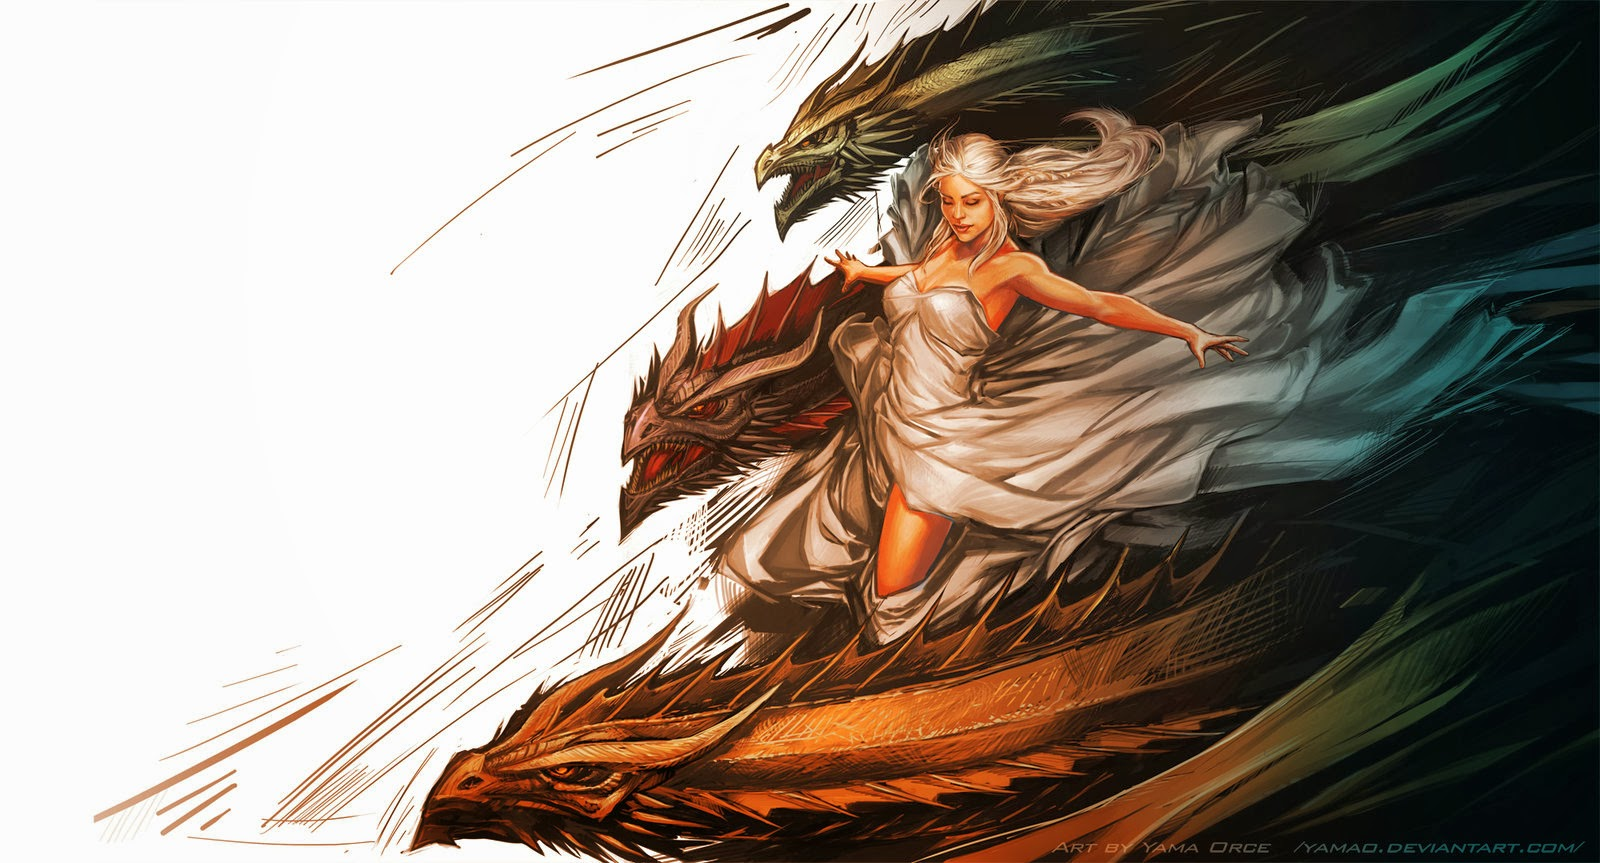 a literary labour of love review a song of ice and fire a dance daenerys drogon viserion and rhaegal art by yama orce